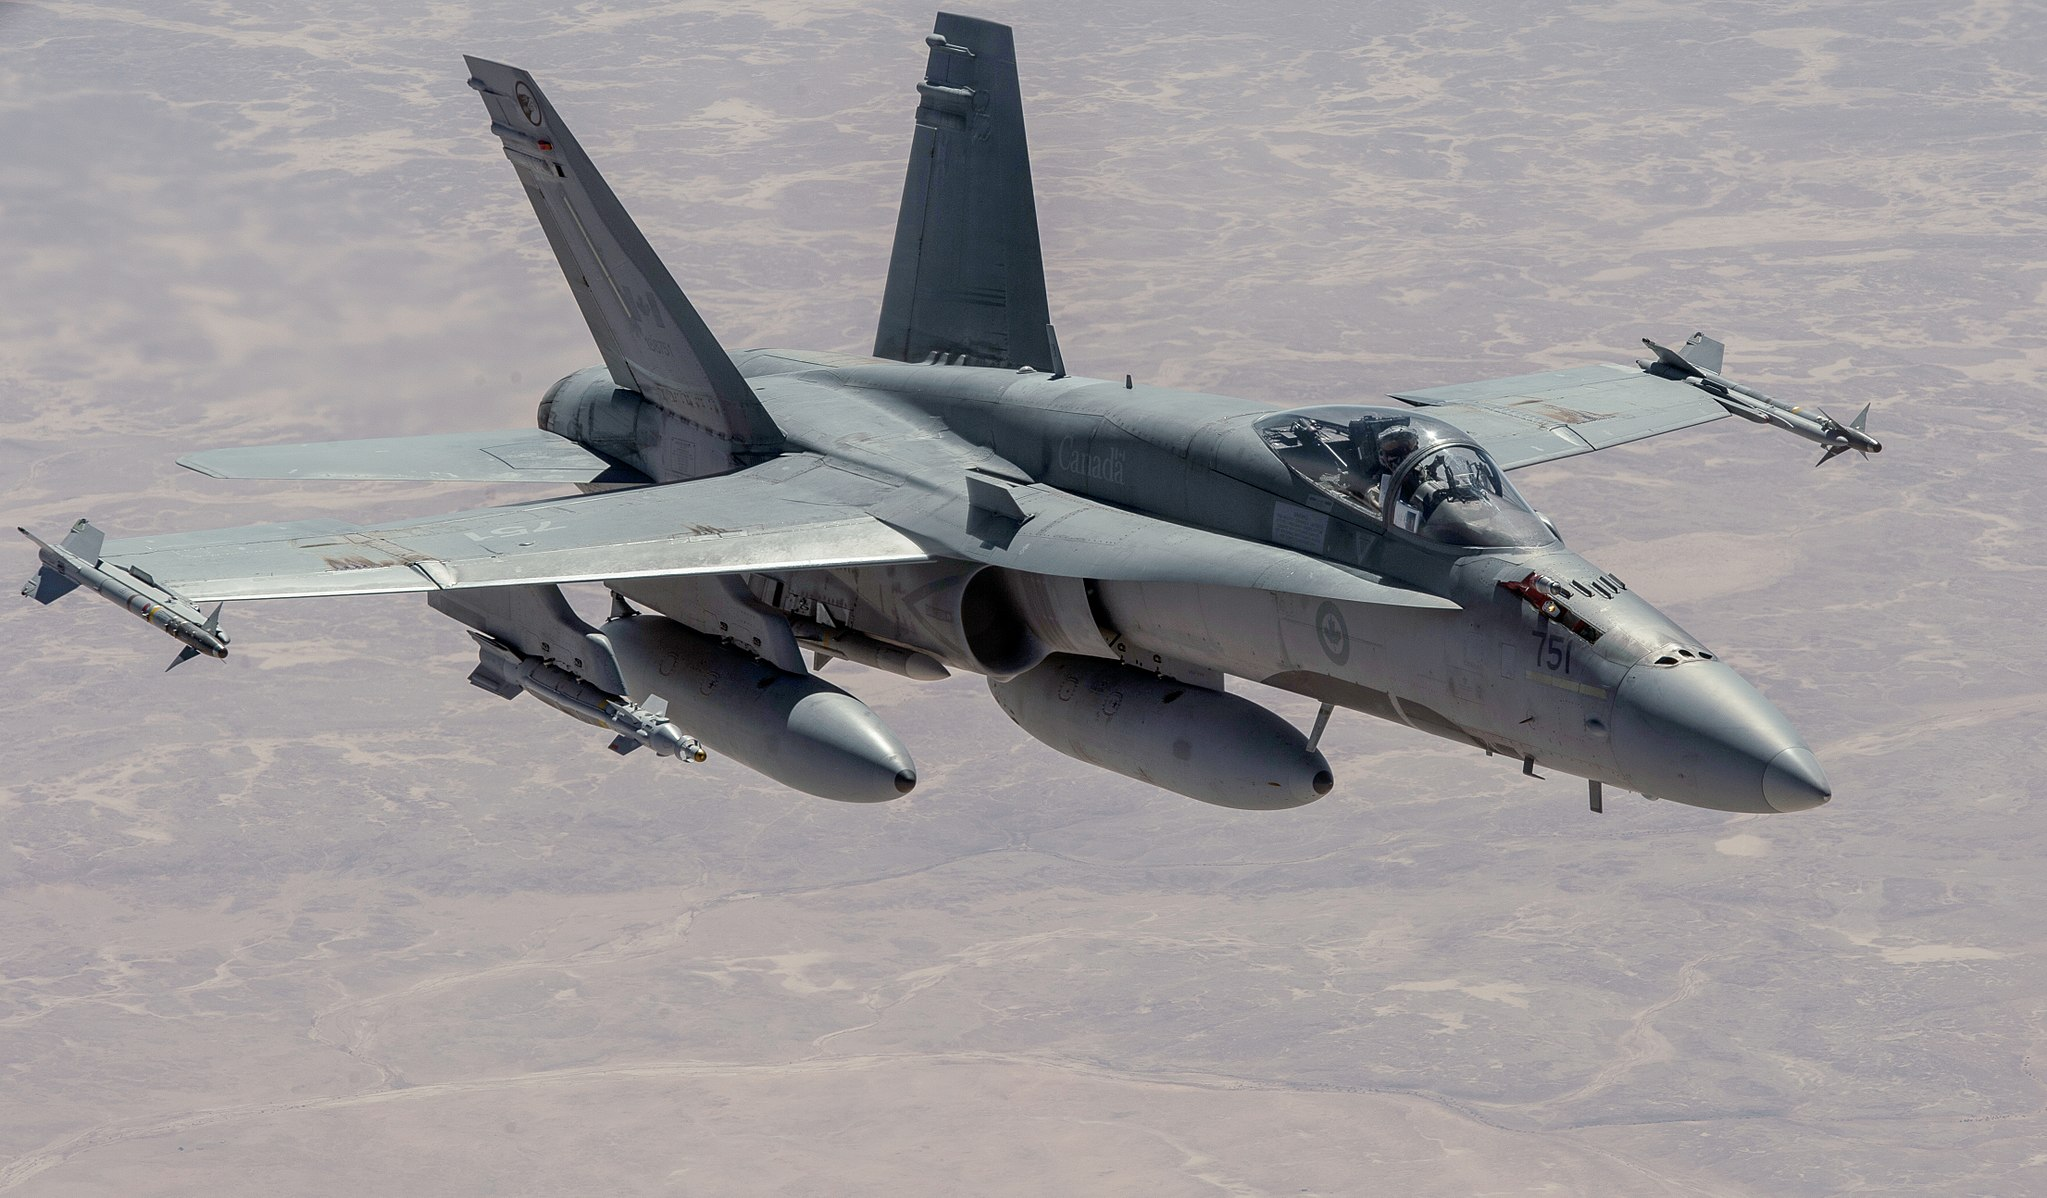 A Royal Canadian Air Force CF-188 Hornet flies over Iraq on March 4, 2015 in support of Operation Inherent Resolve